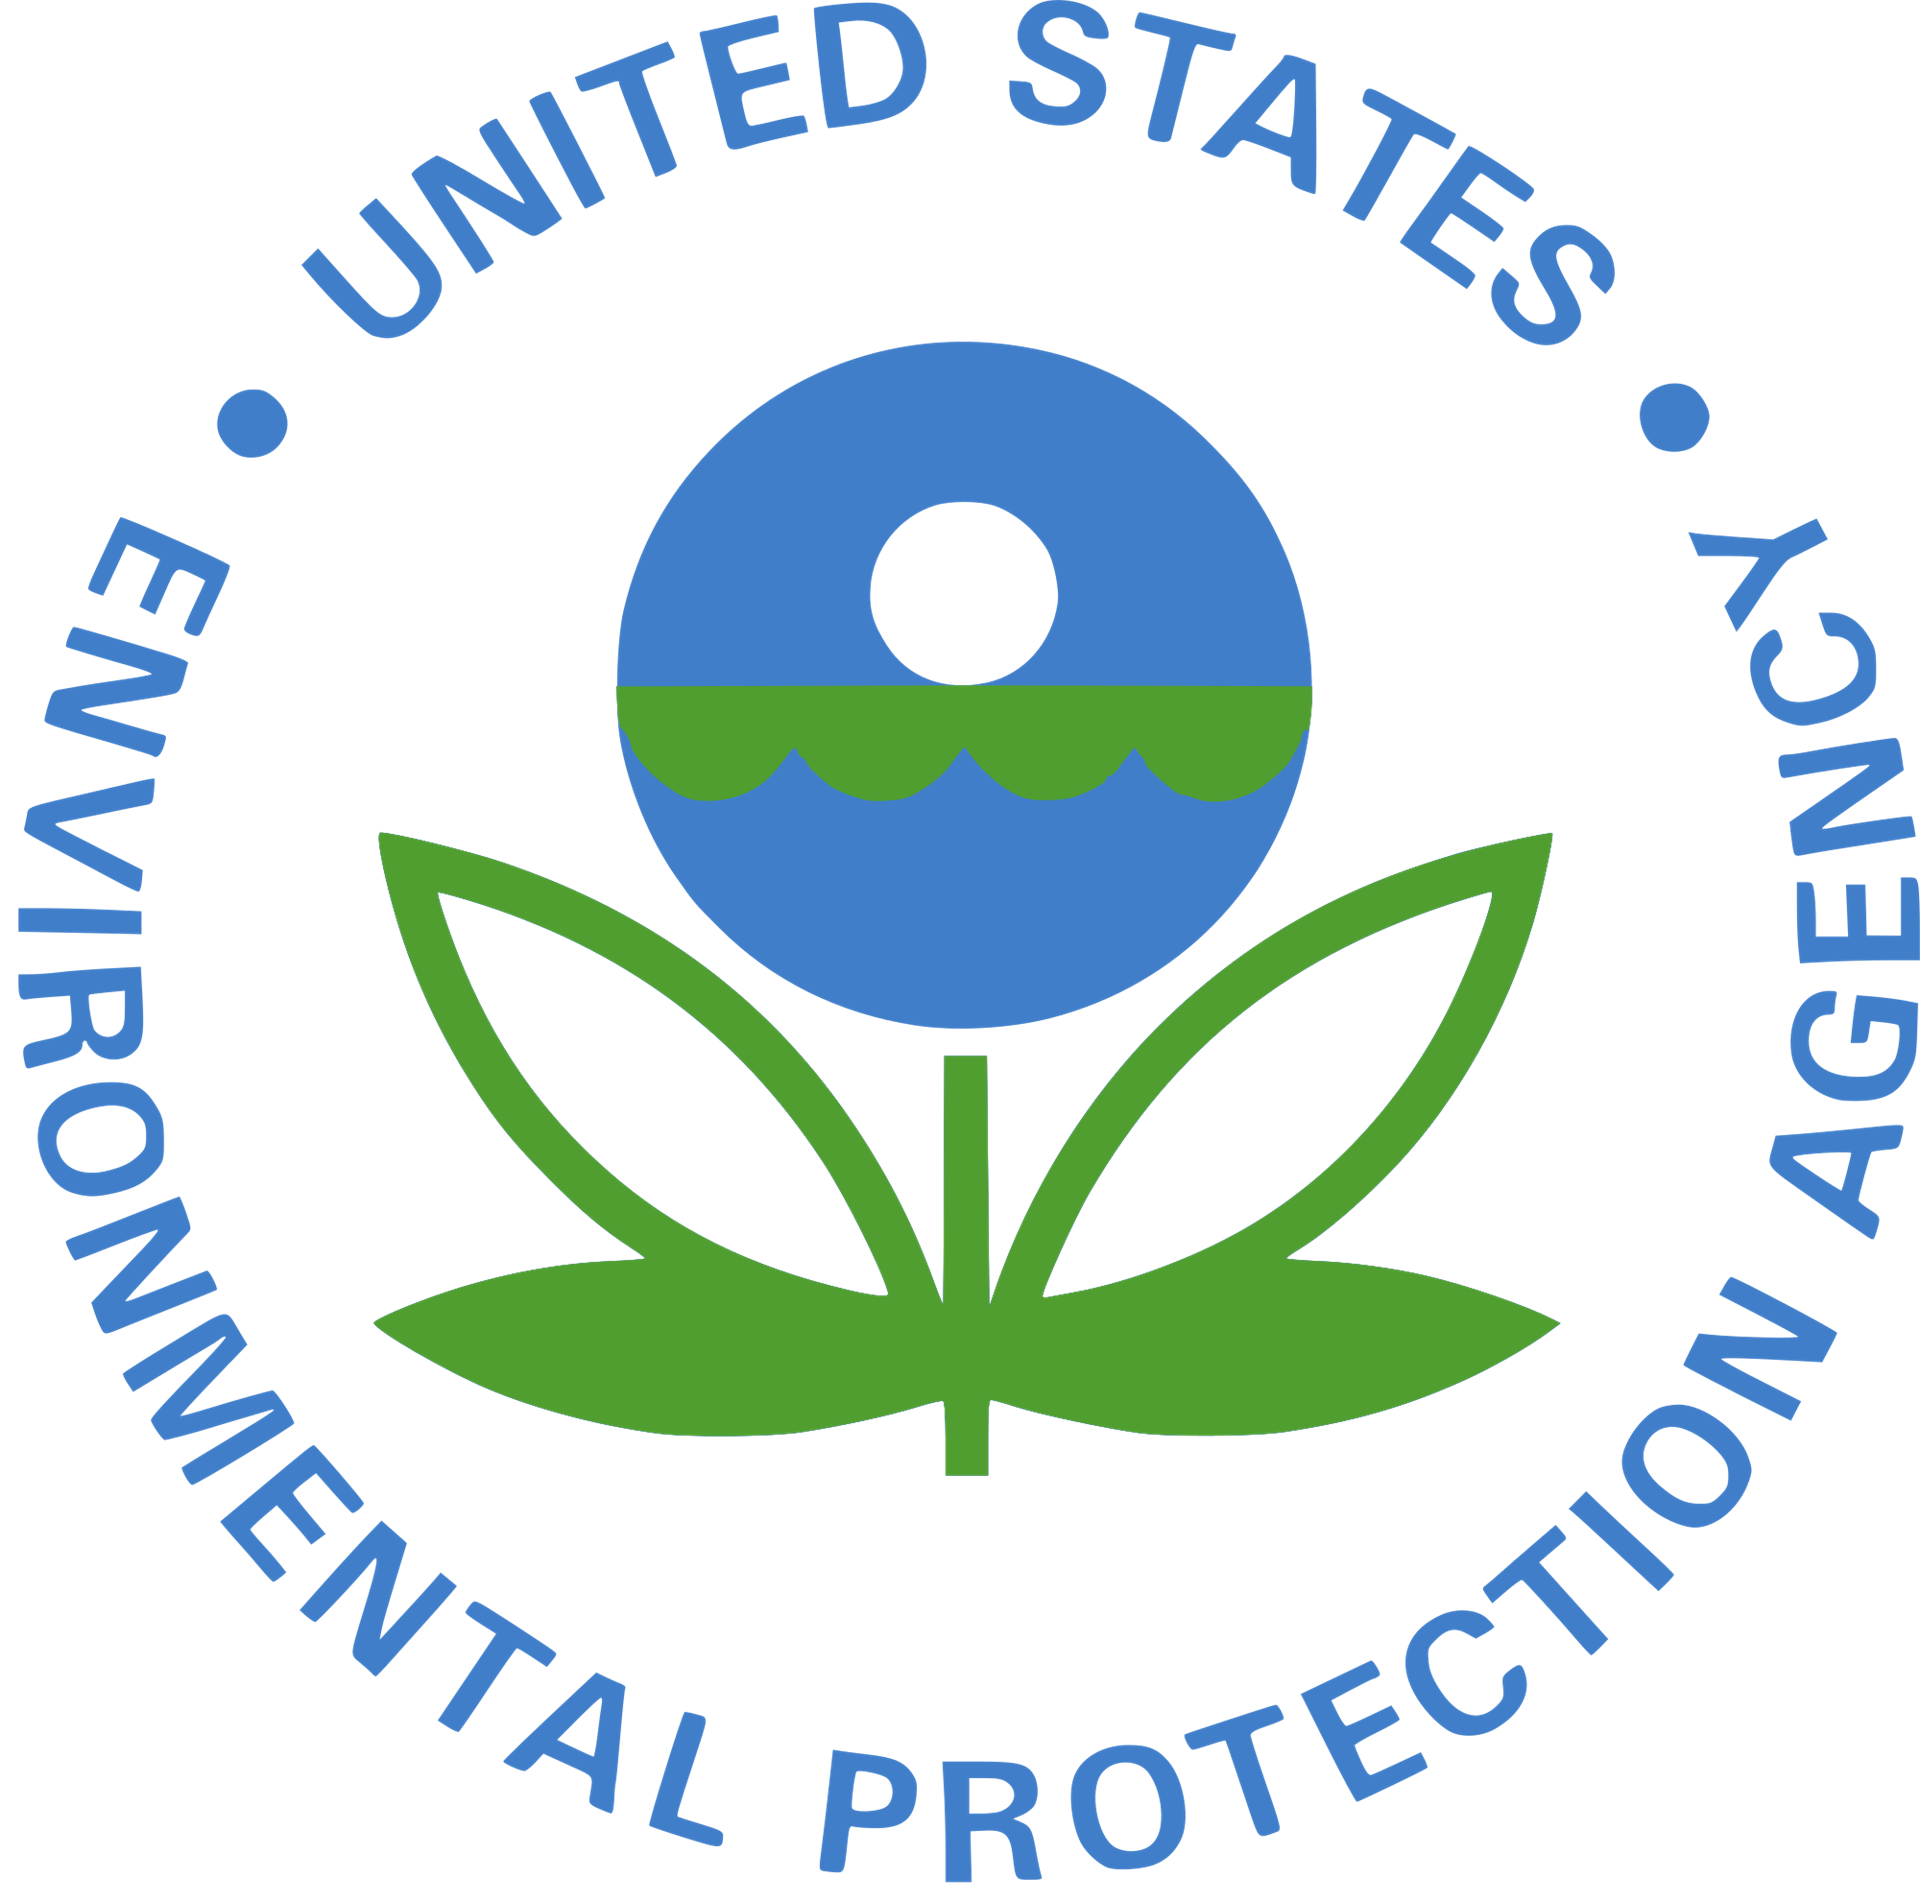 May 24, 2018: E2Tech Forum with EPA Region I Administrator Alex Dunn, Portland